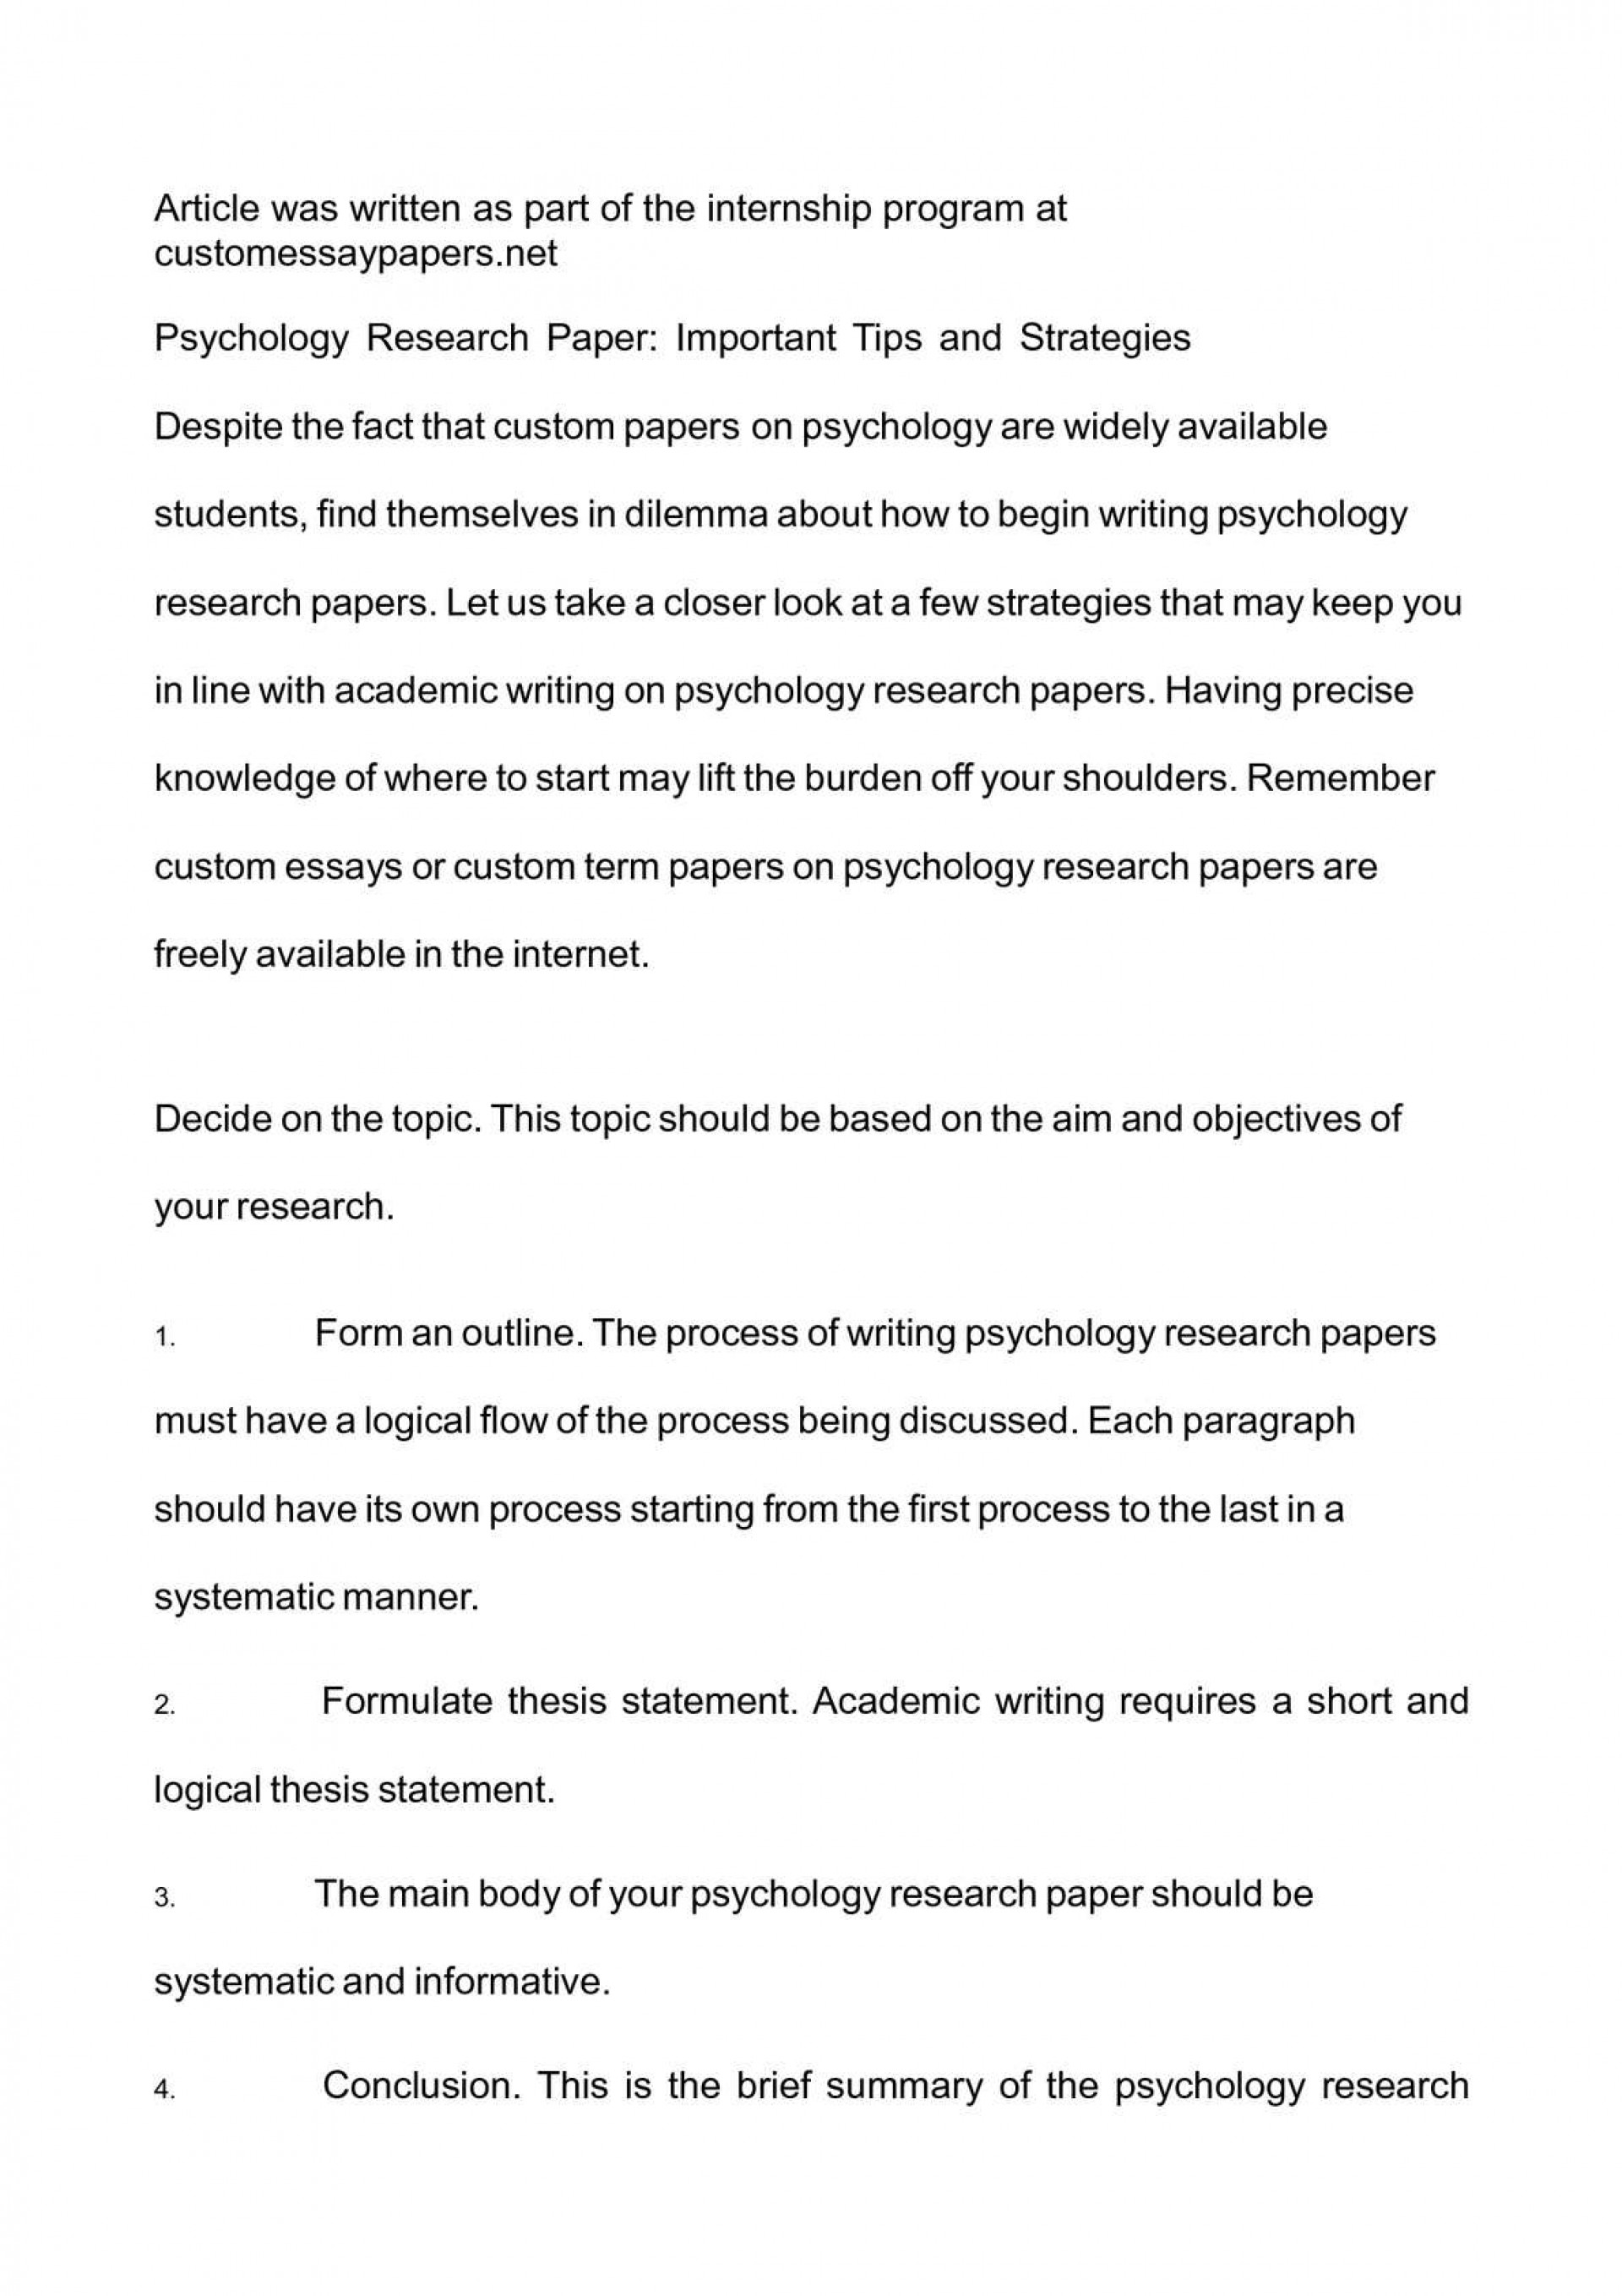 019 Psychology Research Paper Topics Striking For High School Students Reddit 1920